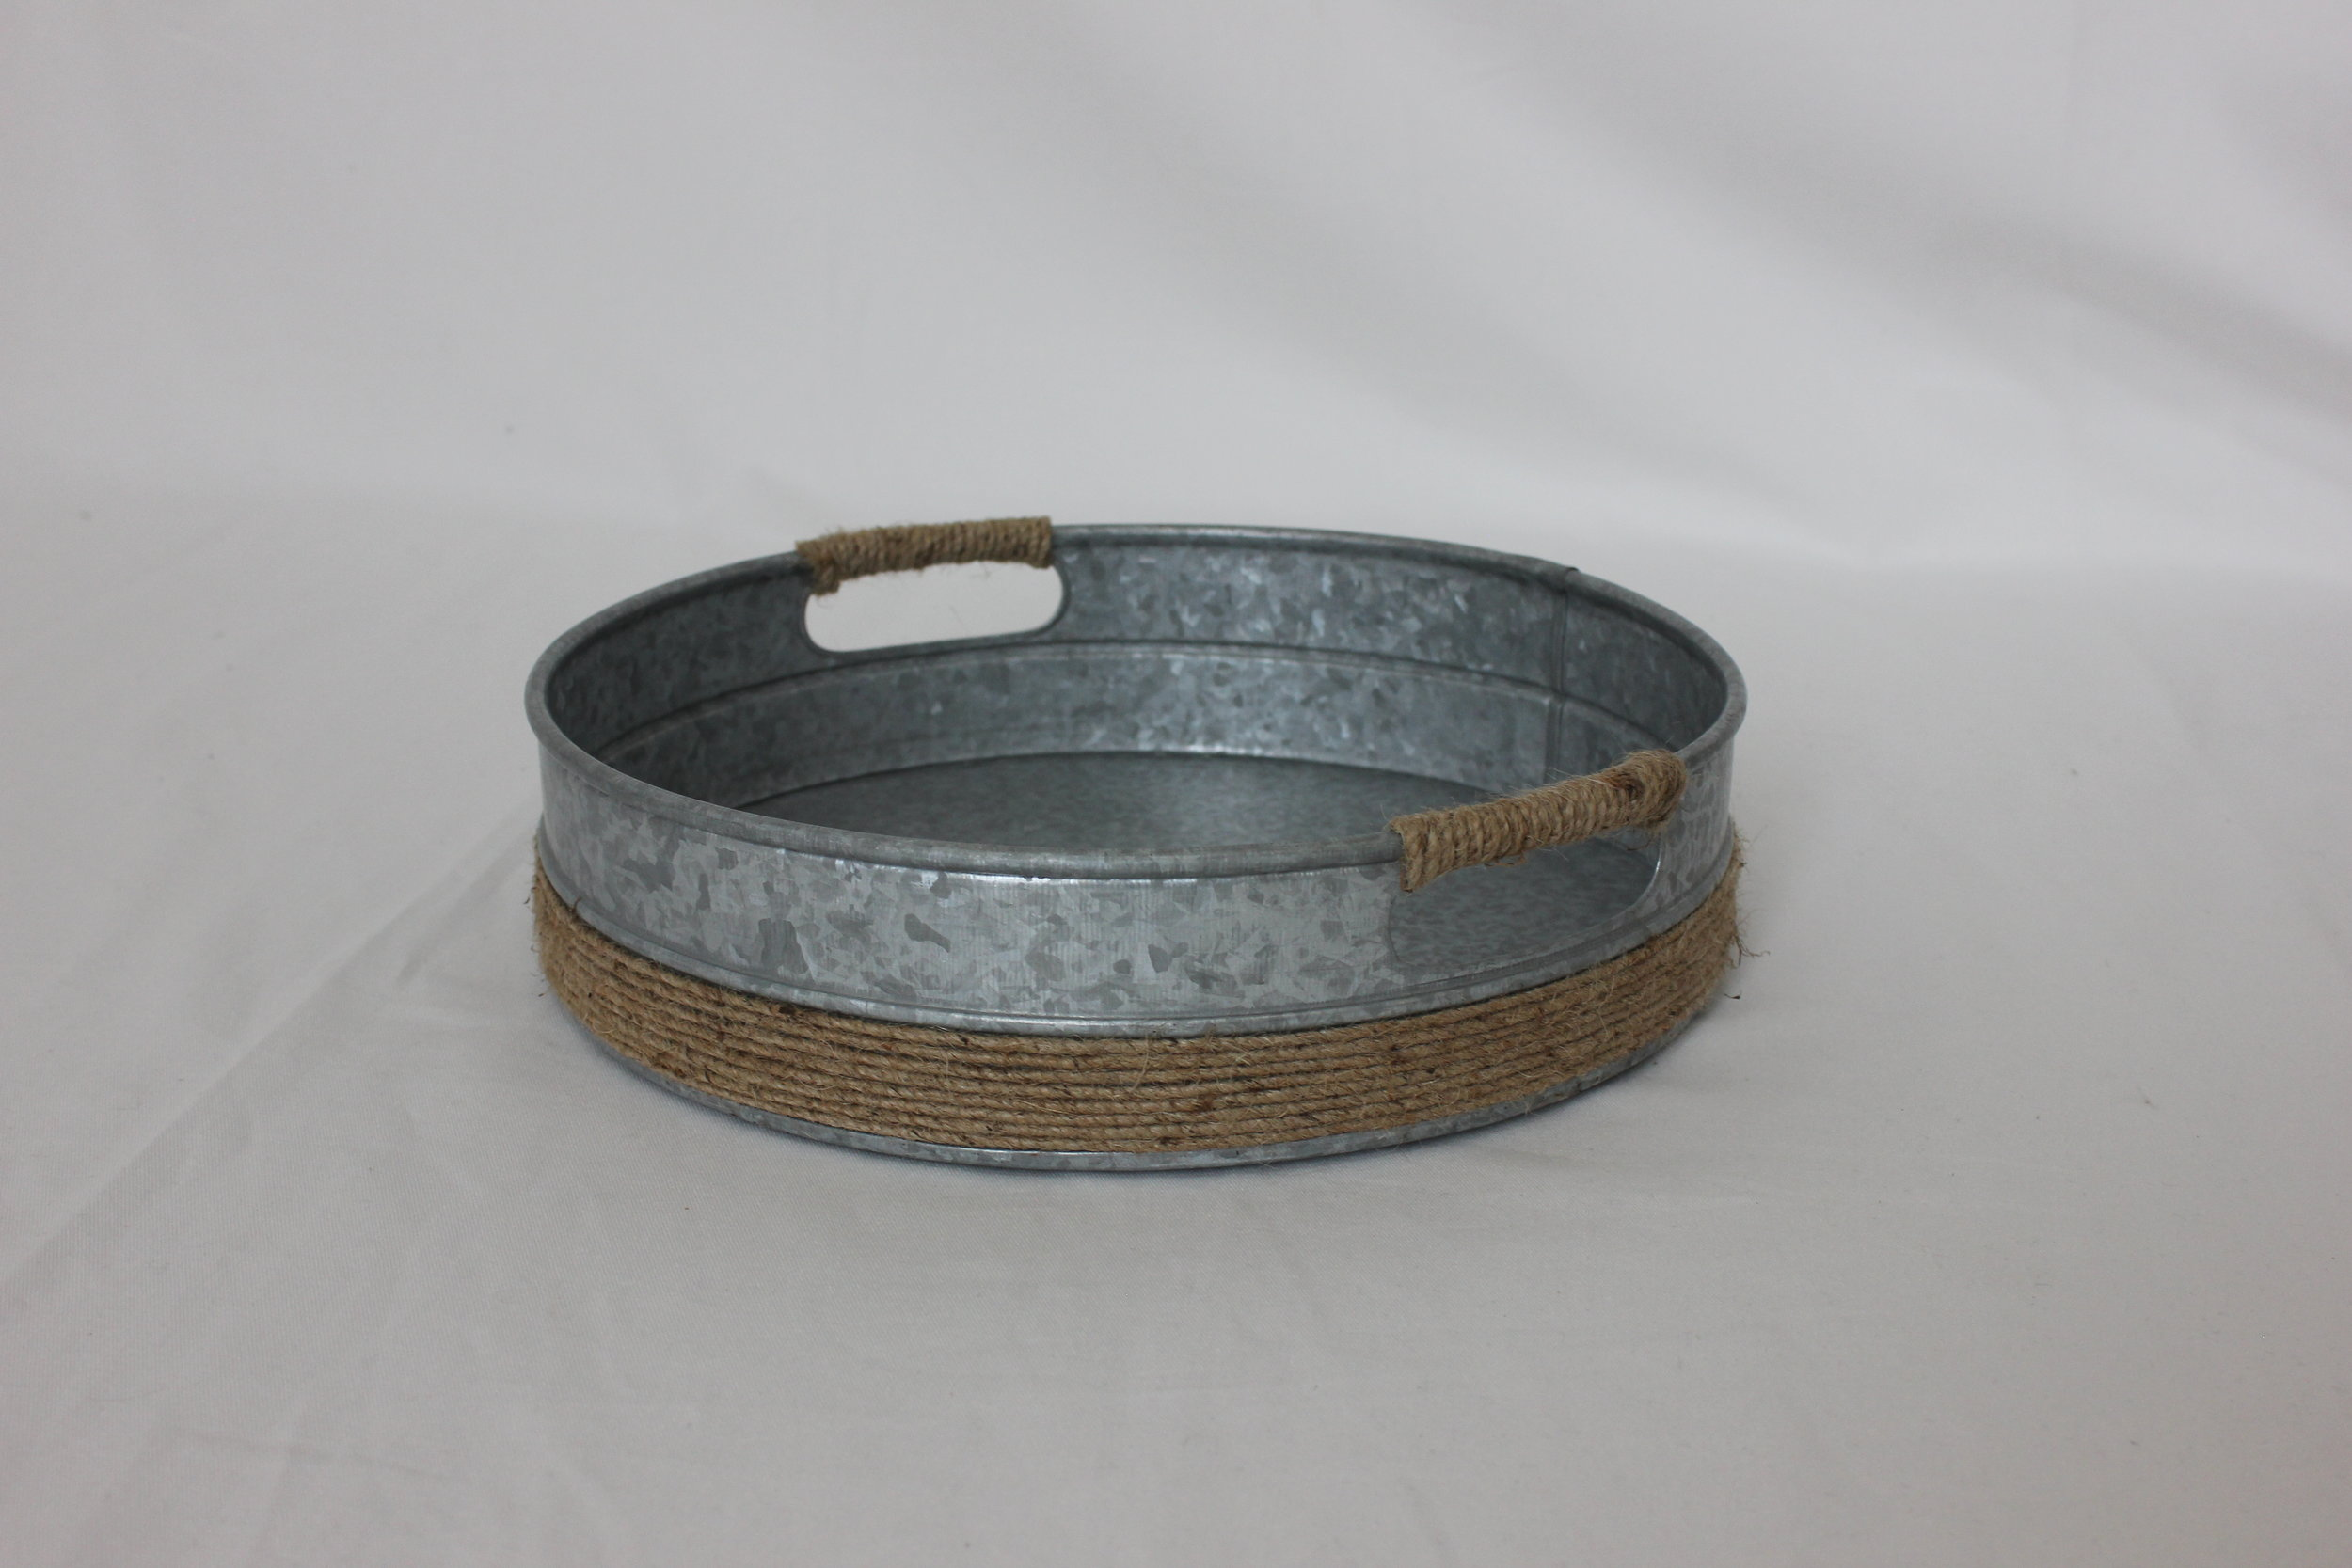 1 Galvanized Small Round Tray $5.00